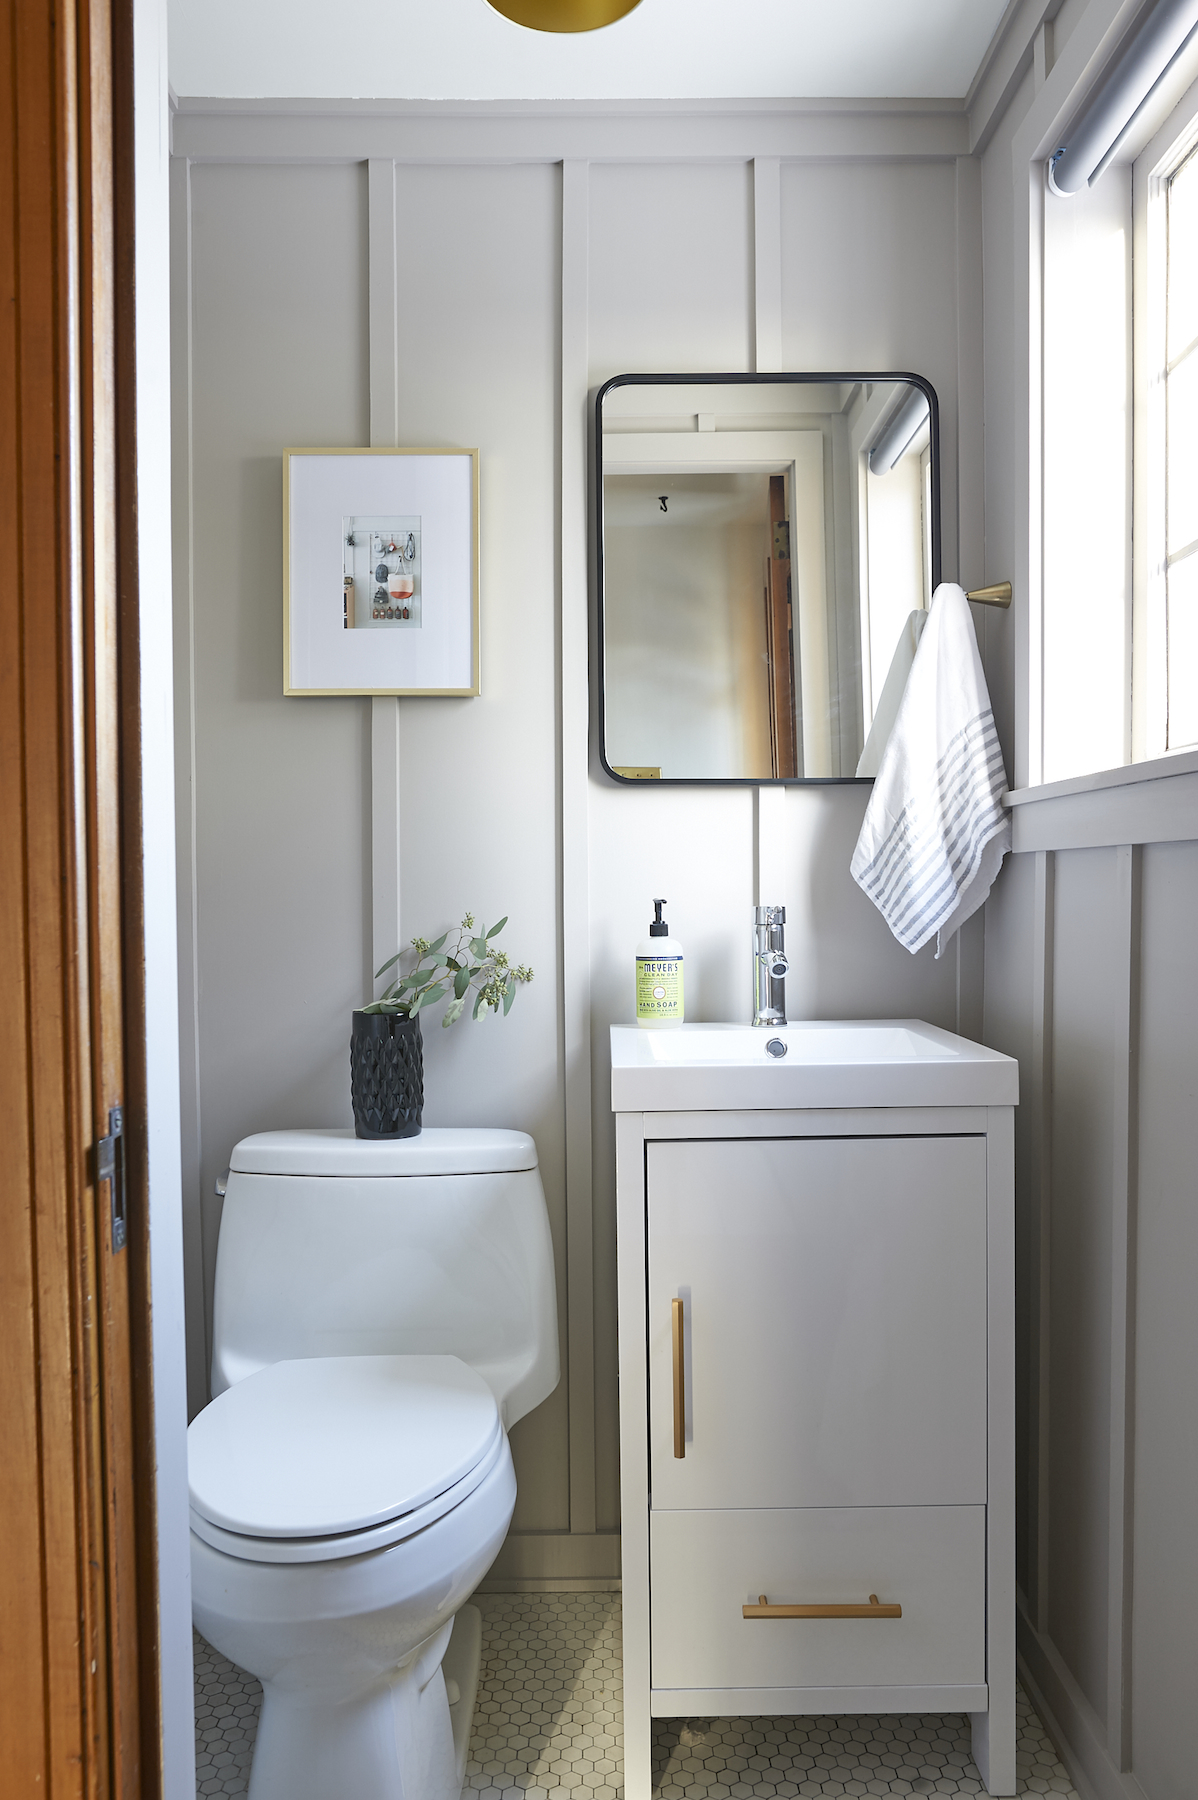 BEHR Park Avenue paint color on board and batten paneled walls of a coastal bathroom - Design Sponge. #parkavenue #behrparkavenue #paintcolors #mushroompaintcolor